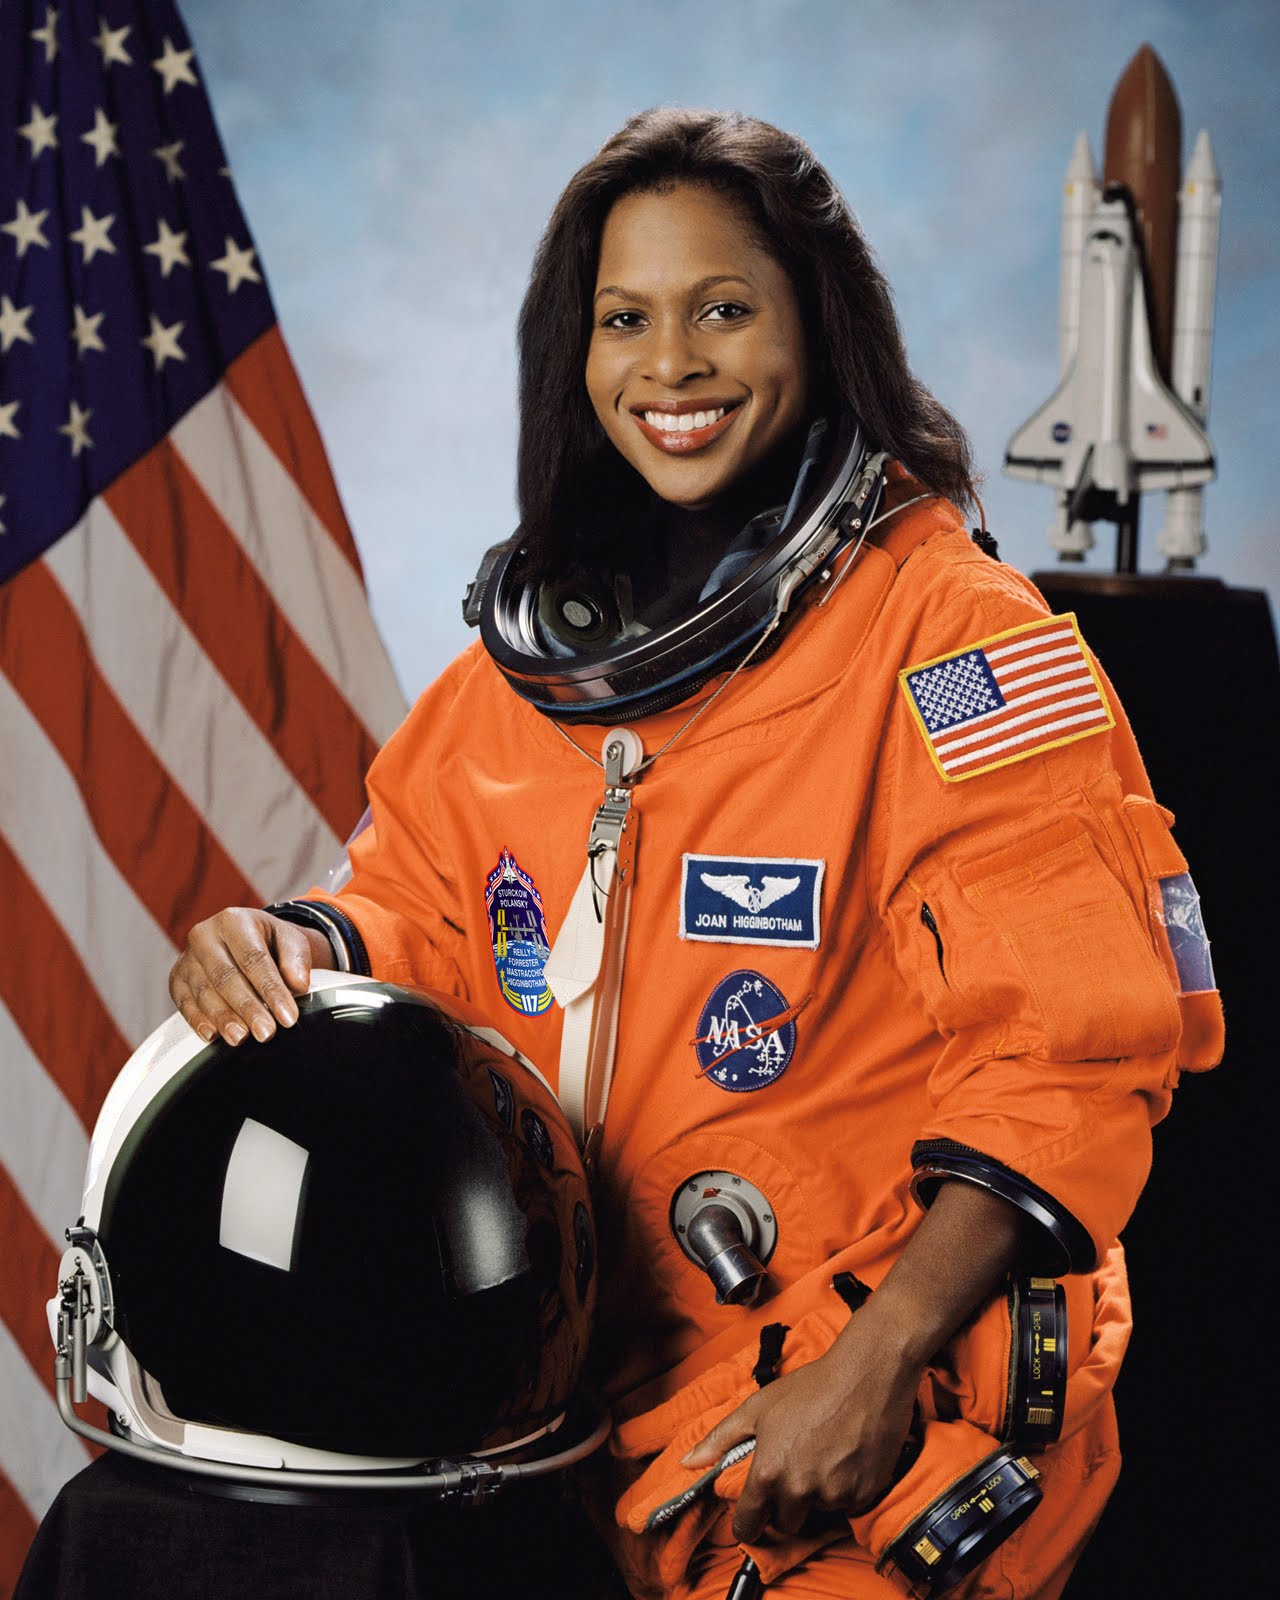 women of the space program astronauts - photo #2